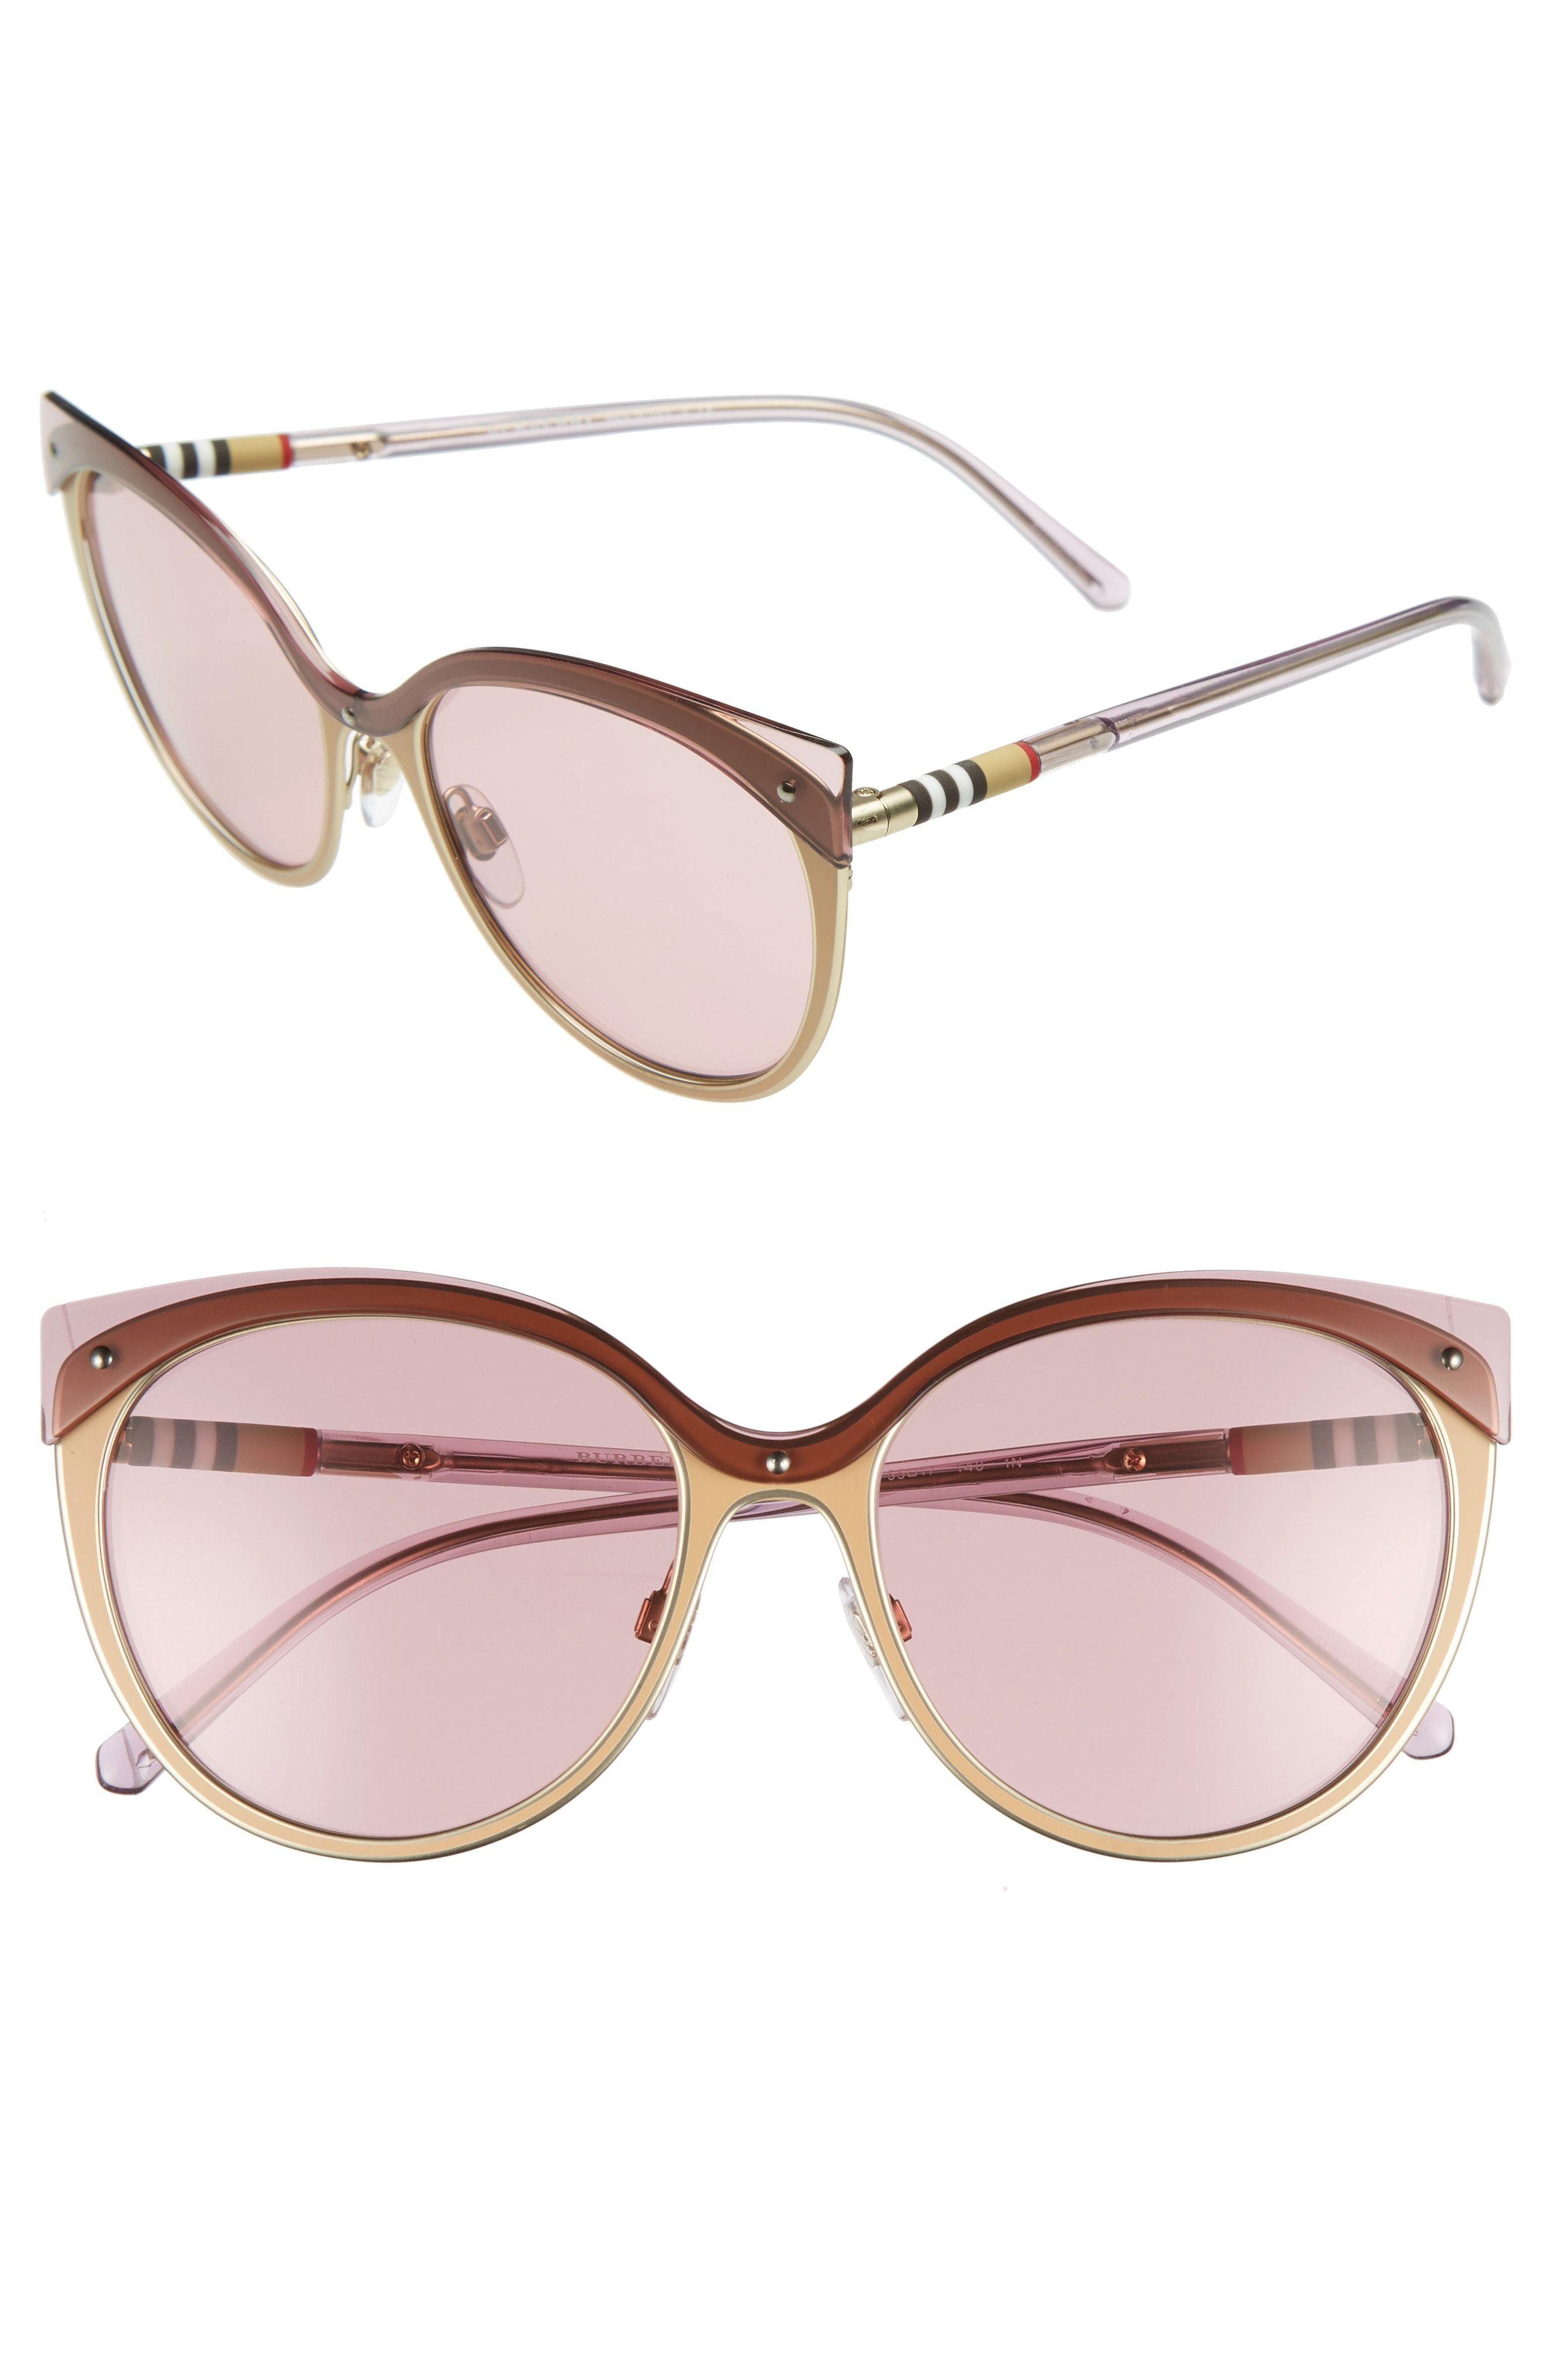 cf52bdc9201 Loving these gorgeous sunnies!!! (AD)